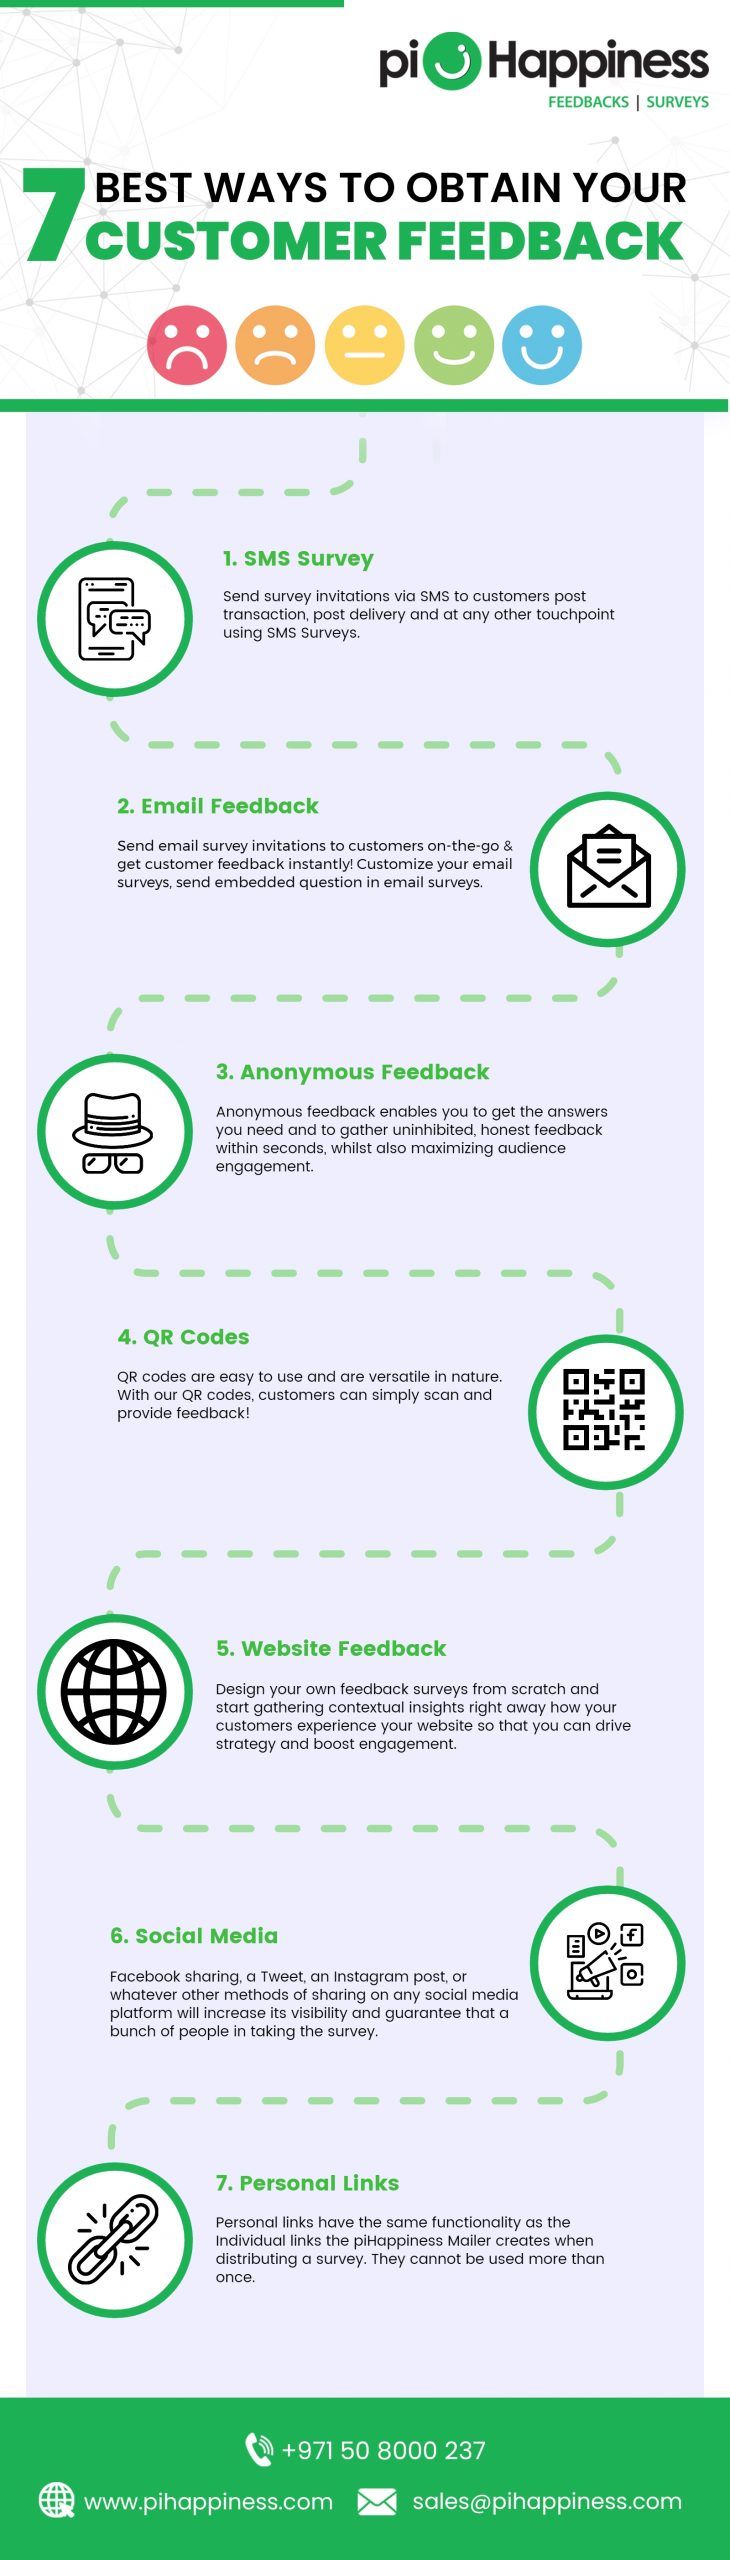 7 Best Ways to Obtain Your Contactless Customer Feedback and Satisfaction Surveys [Infographic]